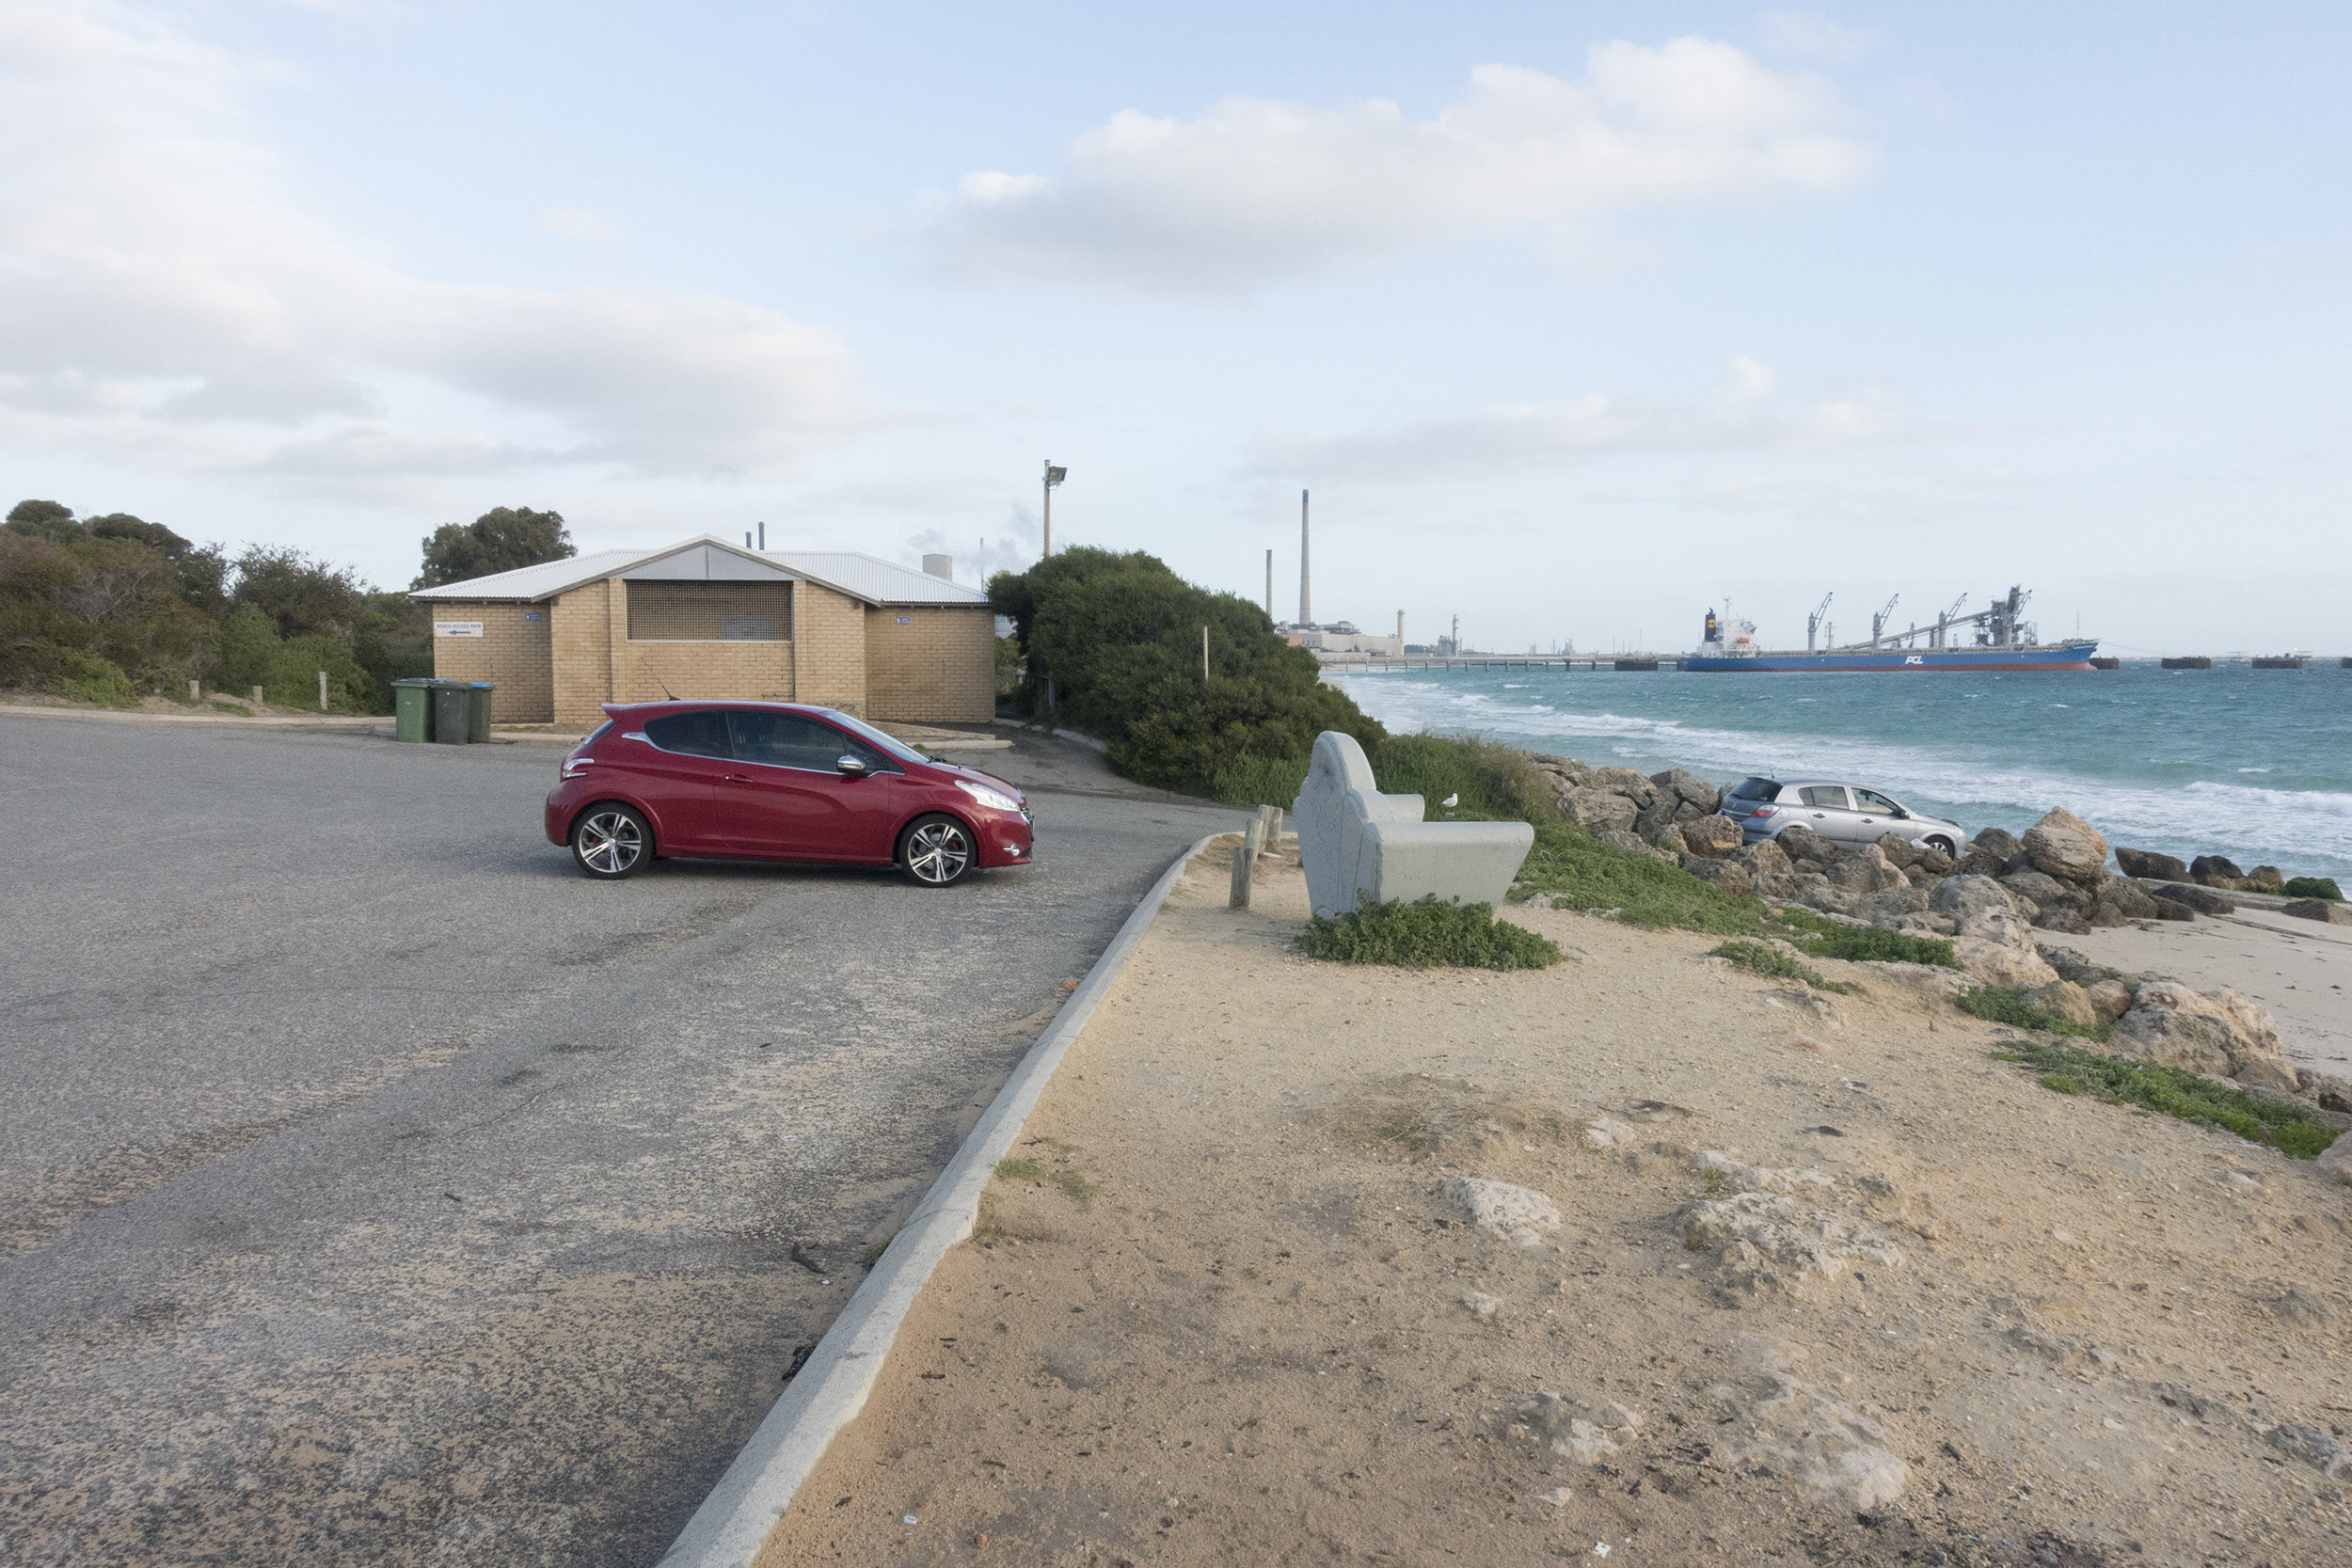 Plate 21: Small carpark and boat launching ramp at Challenger Beach